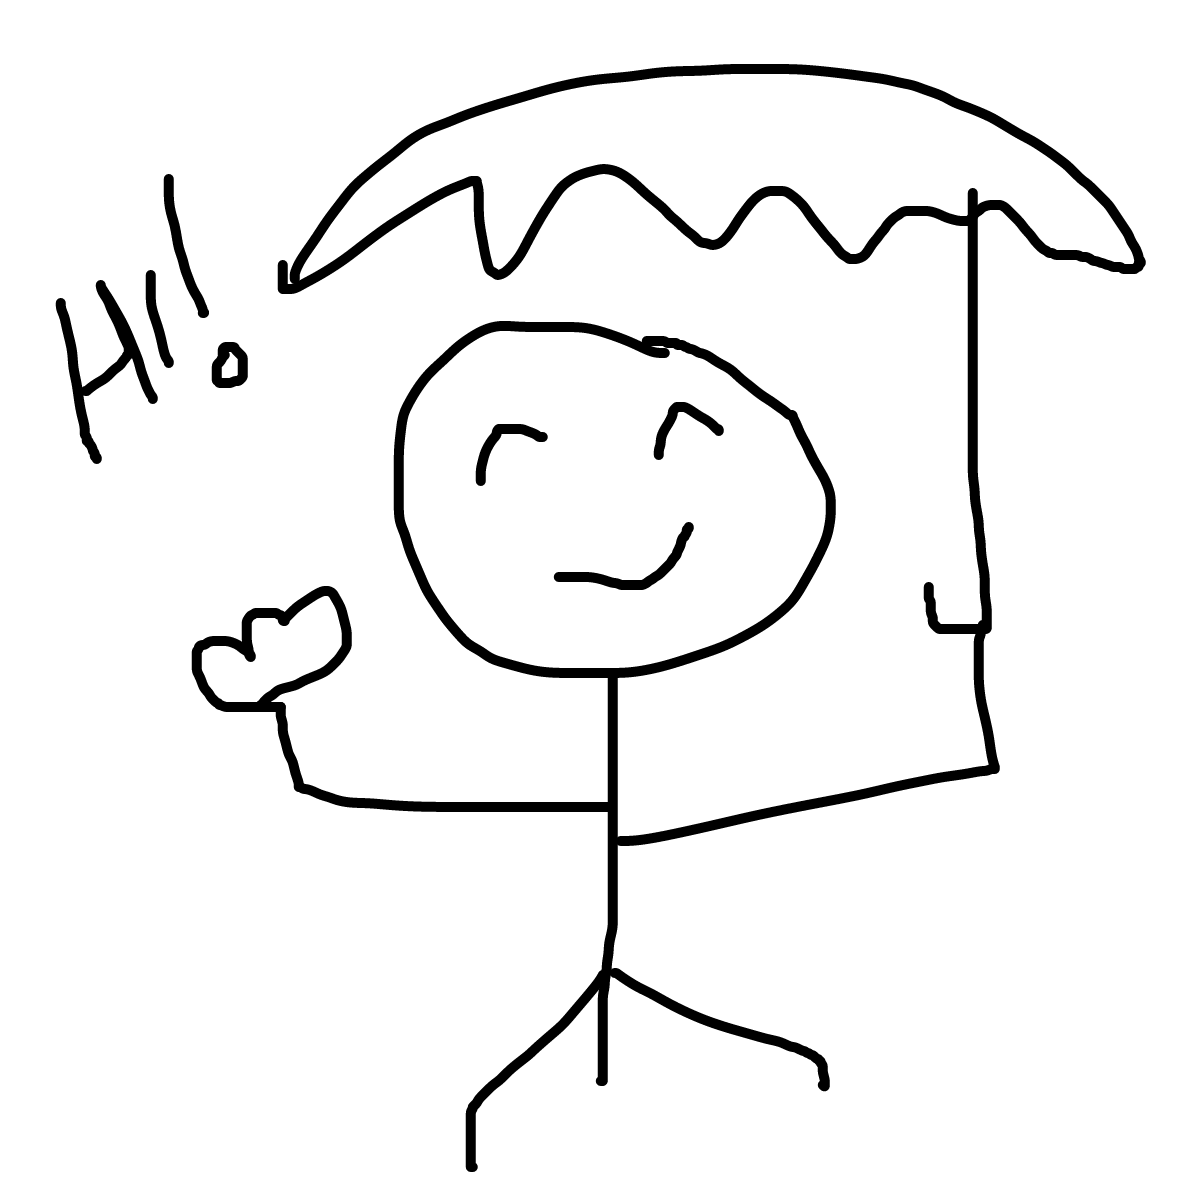 First panel in Rainy Day drawn in our free online drawing game